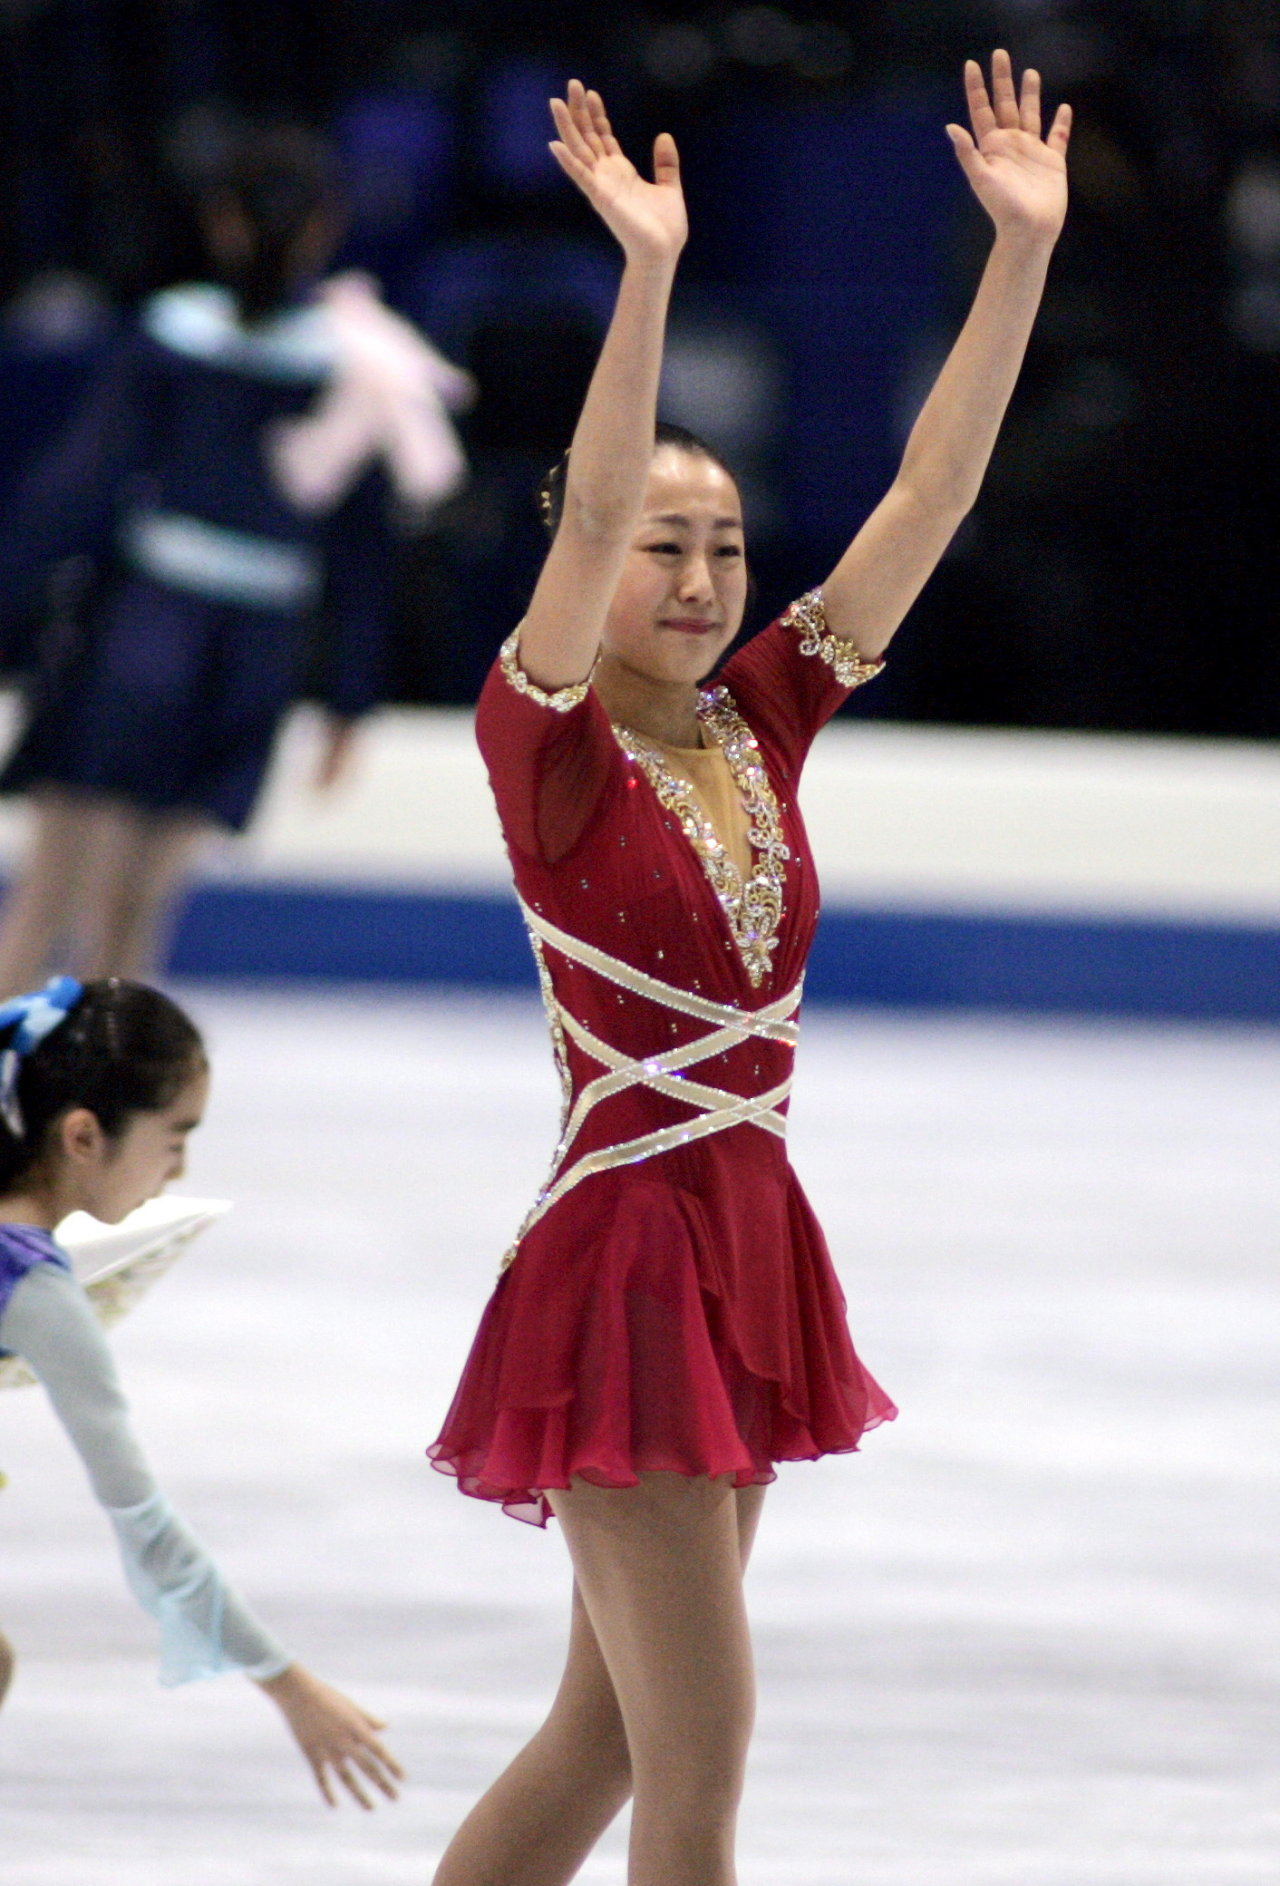 mao-asada-csardas-2006-triple-axel-jumper-figure-skating31.jpg